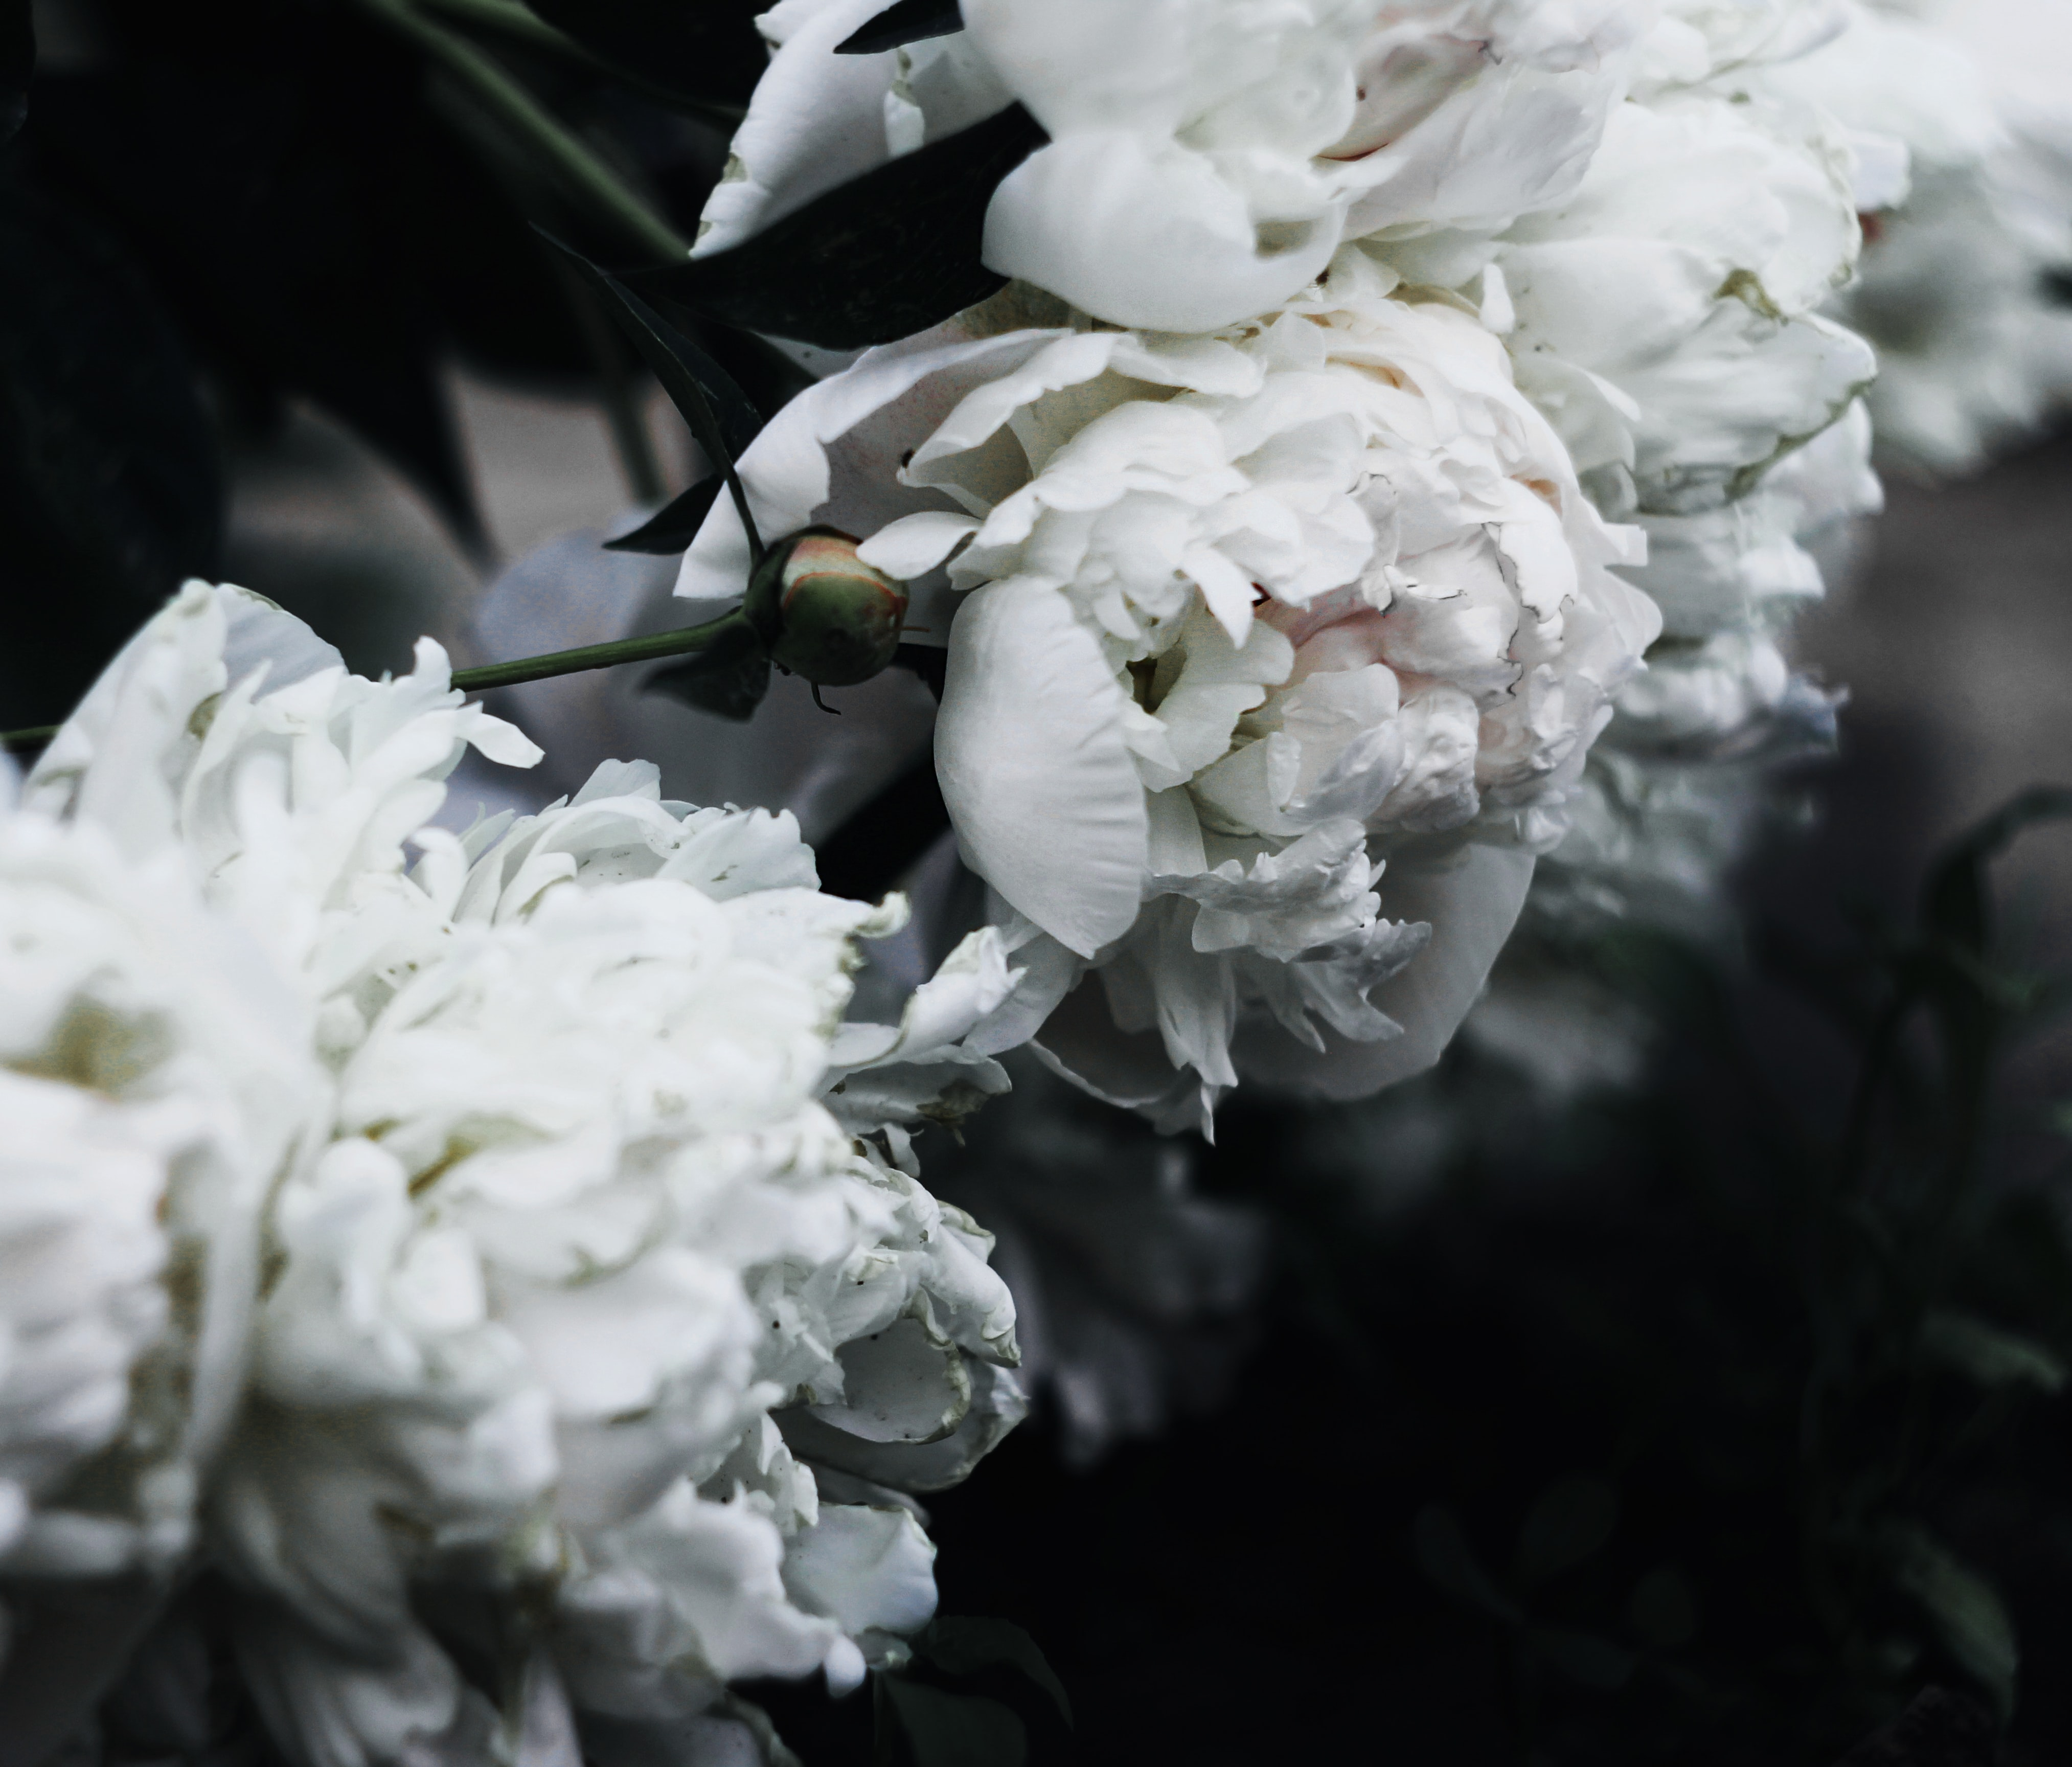 close up photography of white clustered flowers